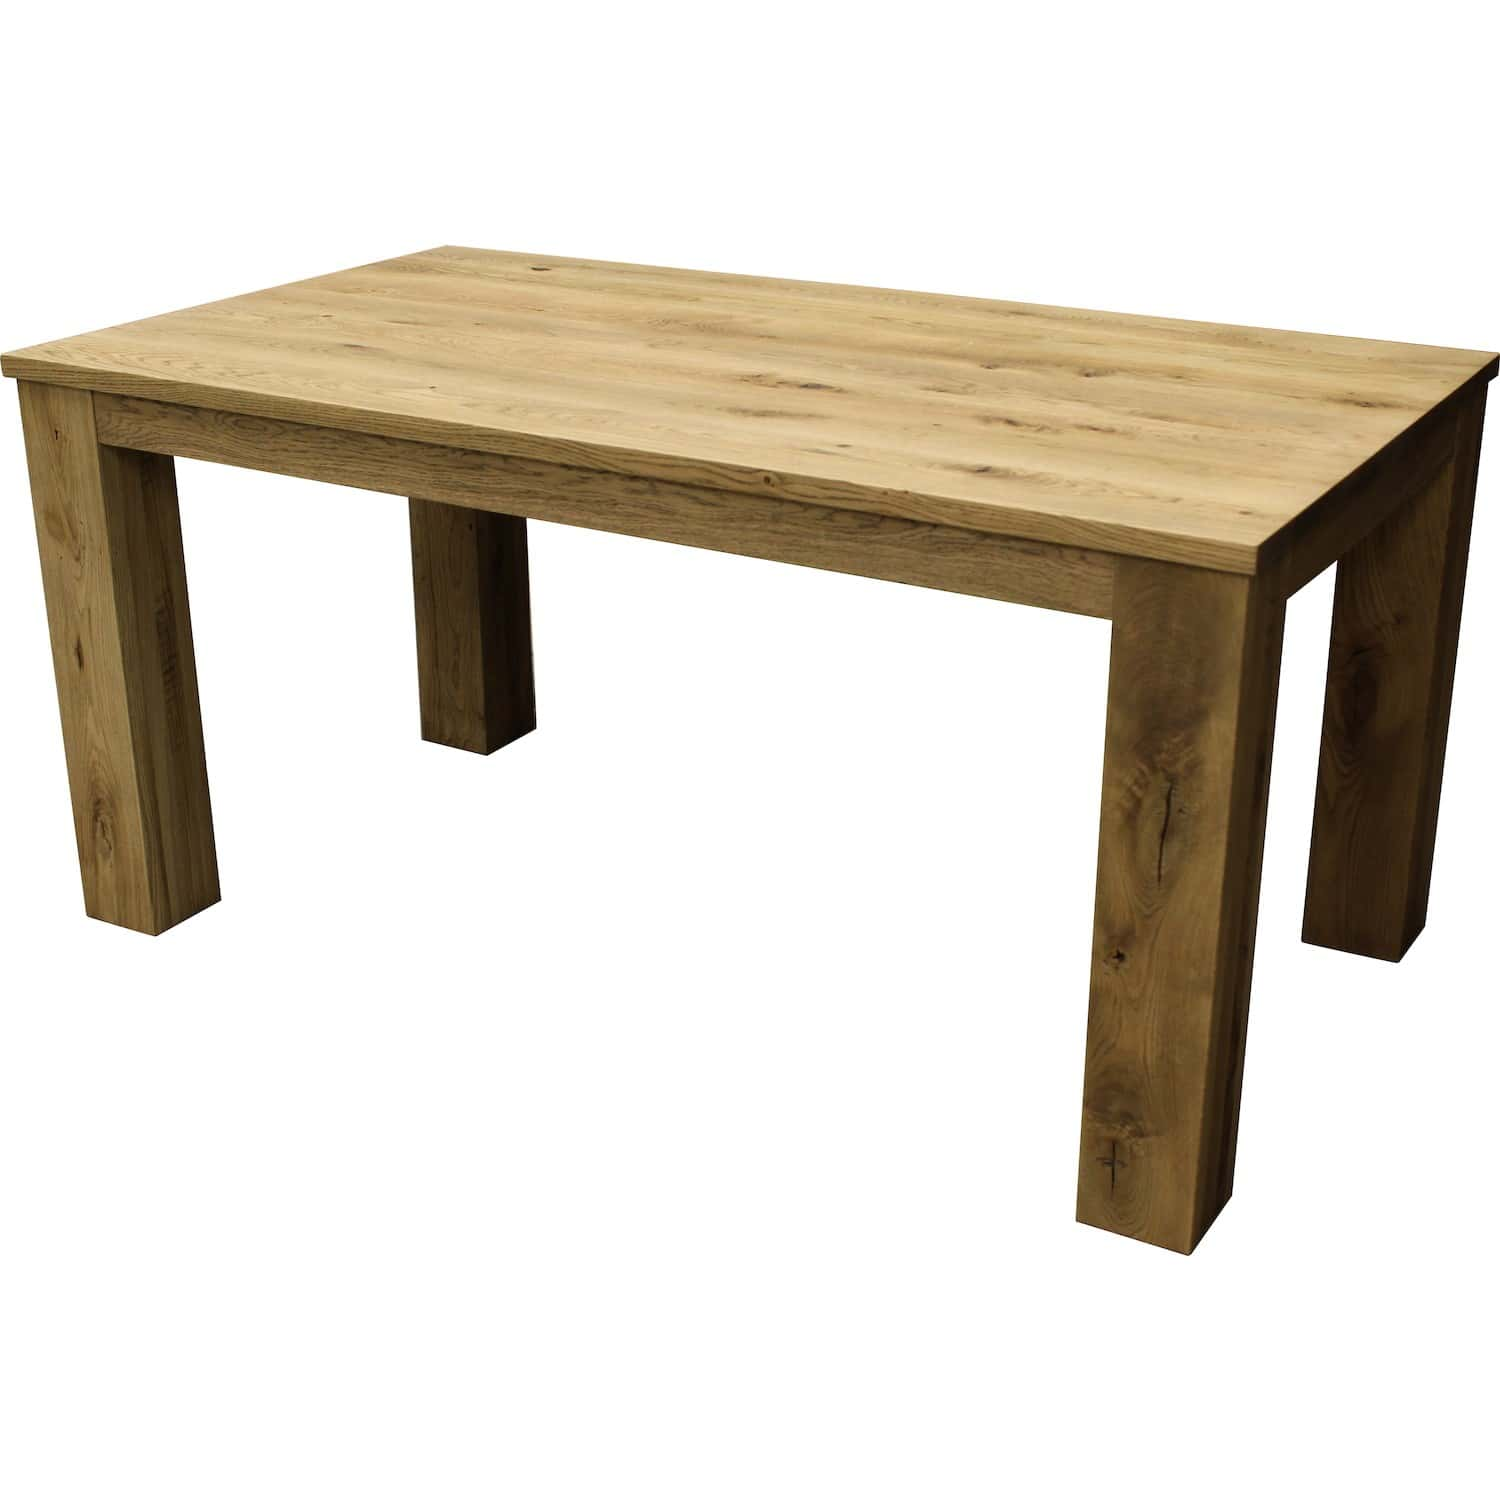 table rectangulaire en ch ne massif avec allonge int gr e jbf